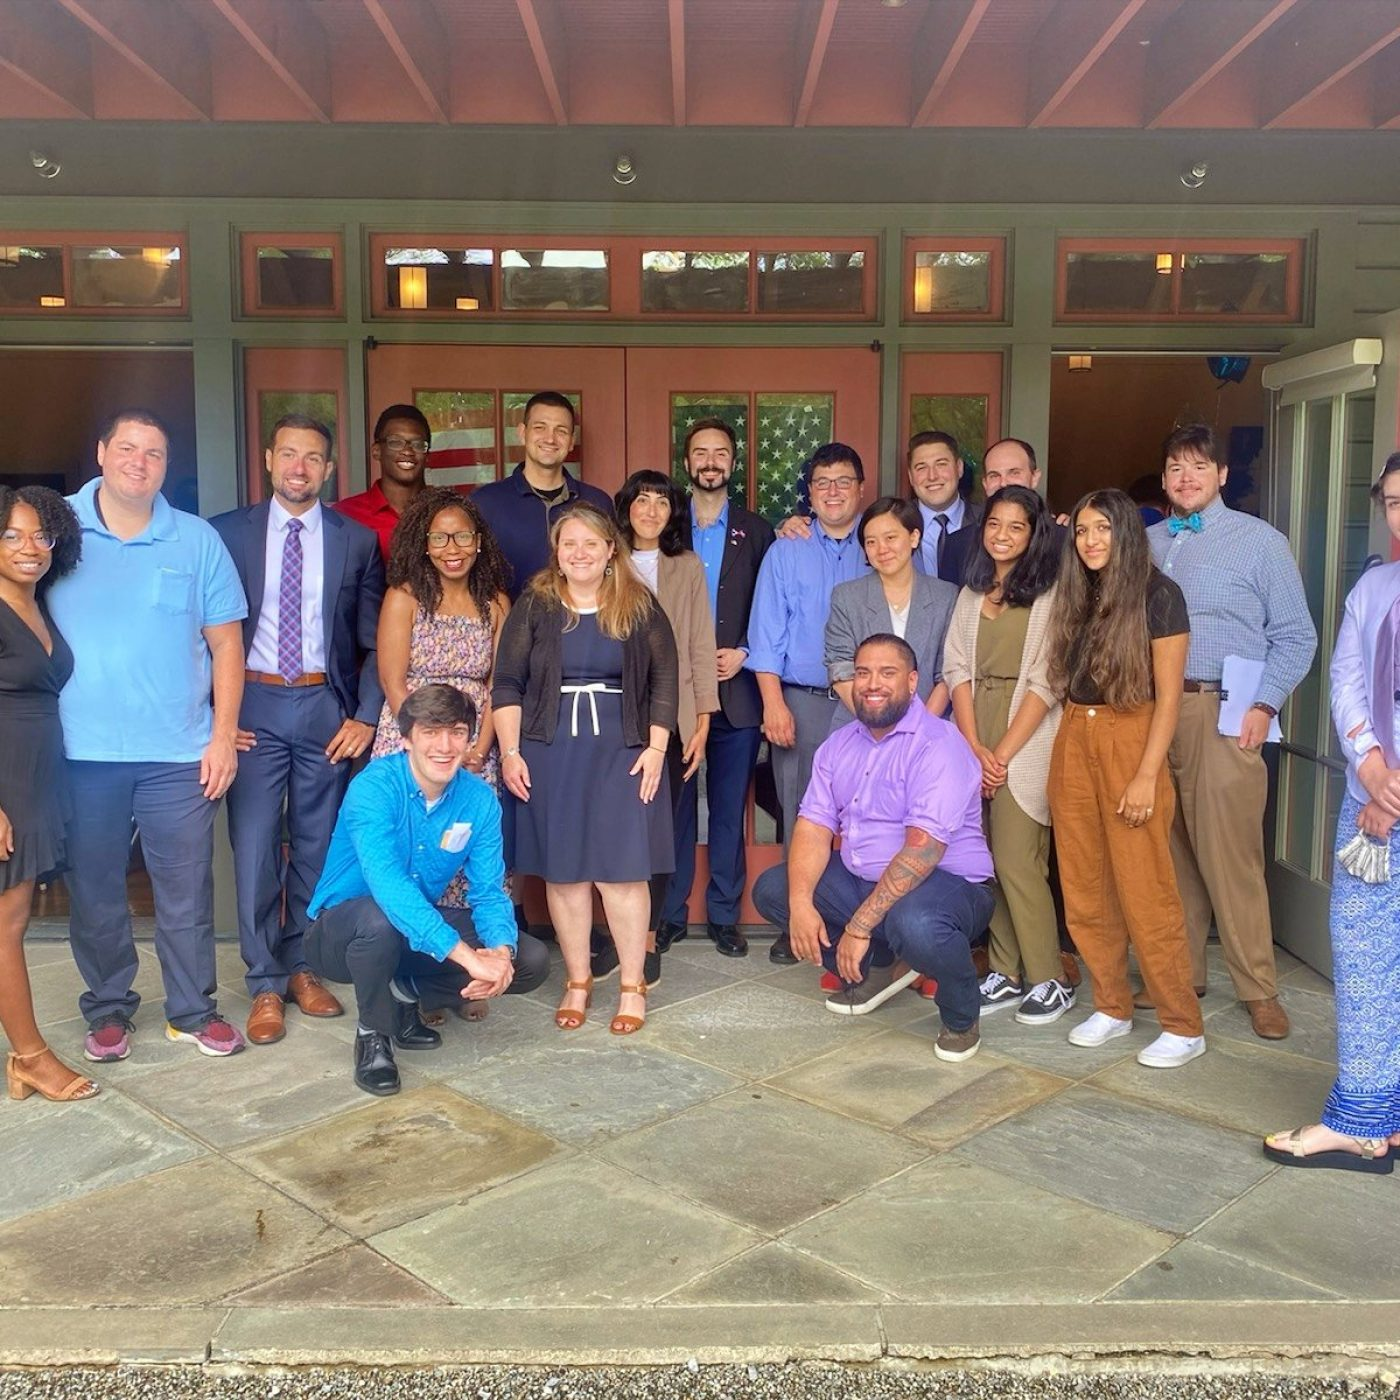 Dutchess County Young Democrats Group Photo